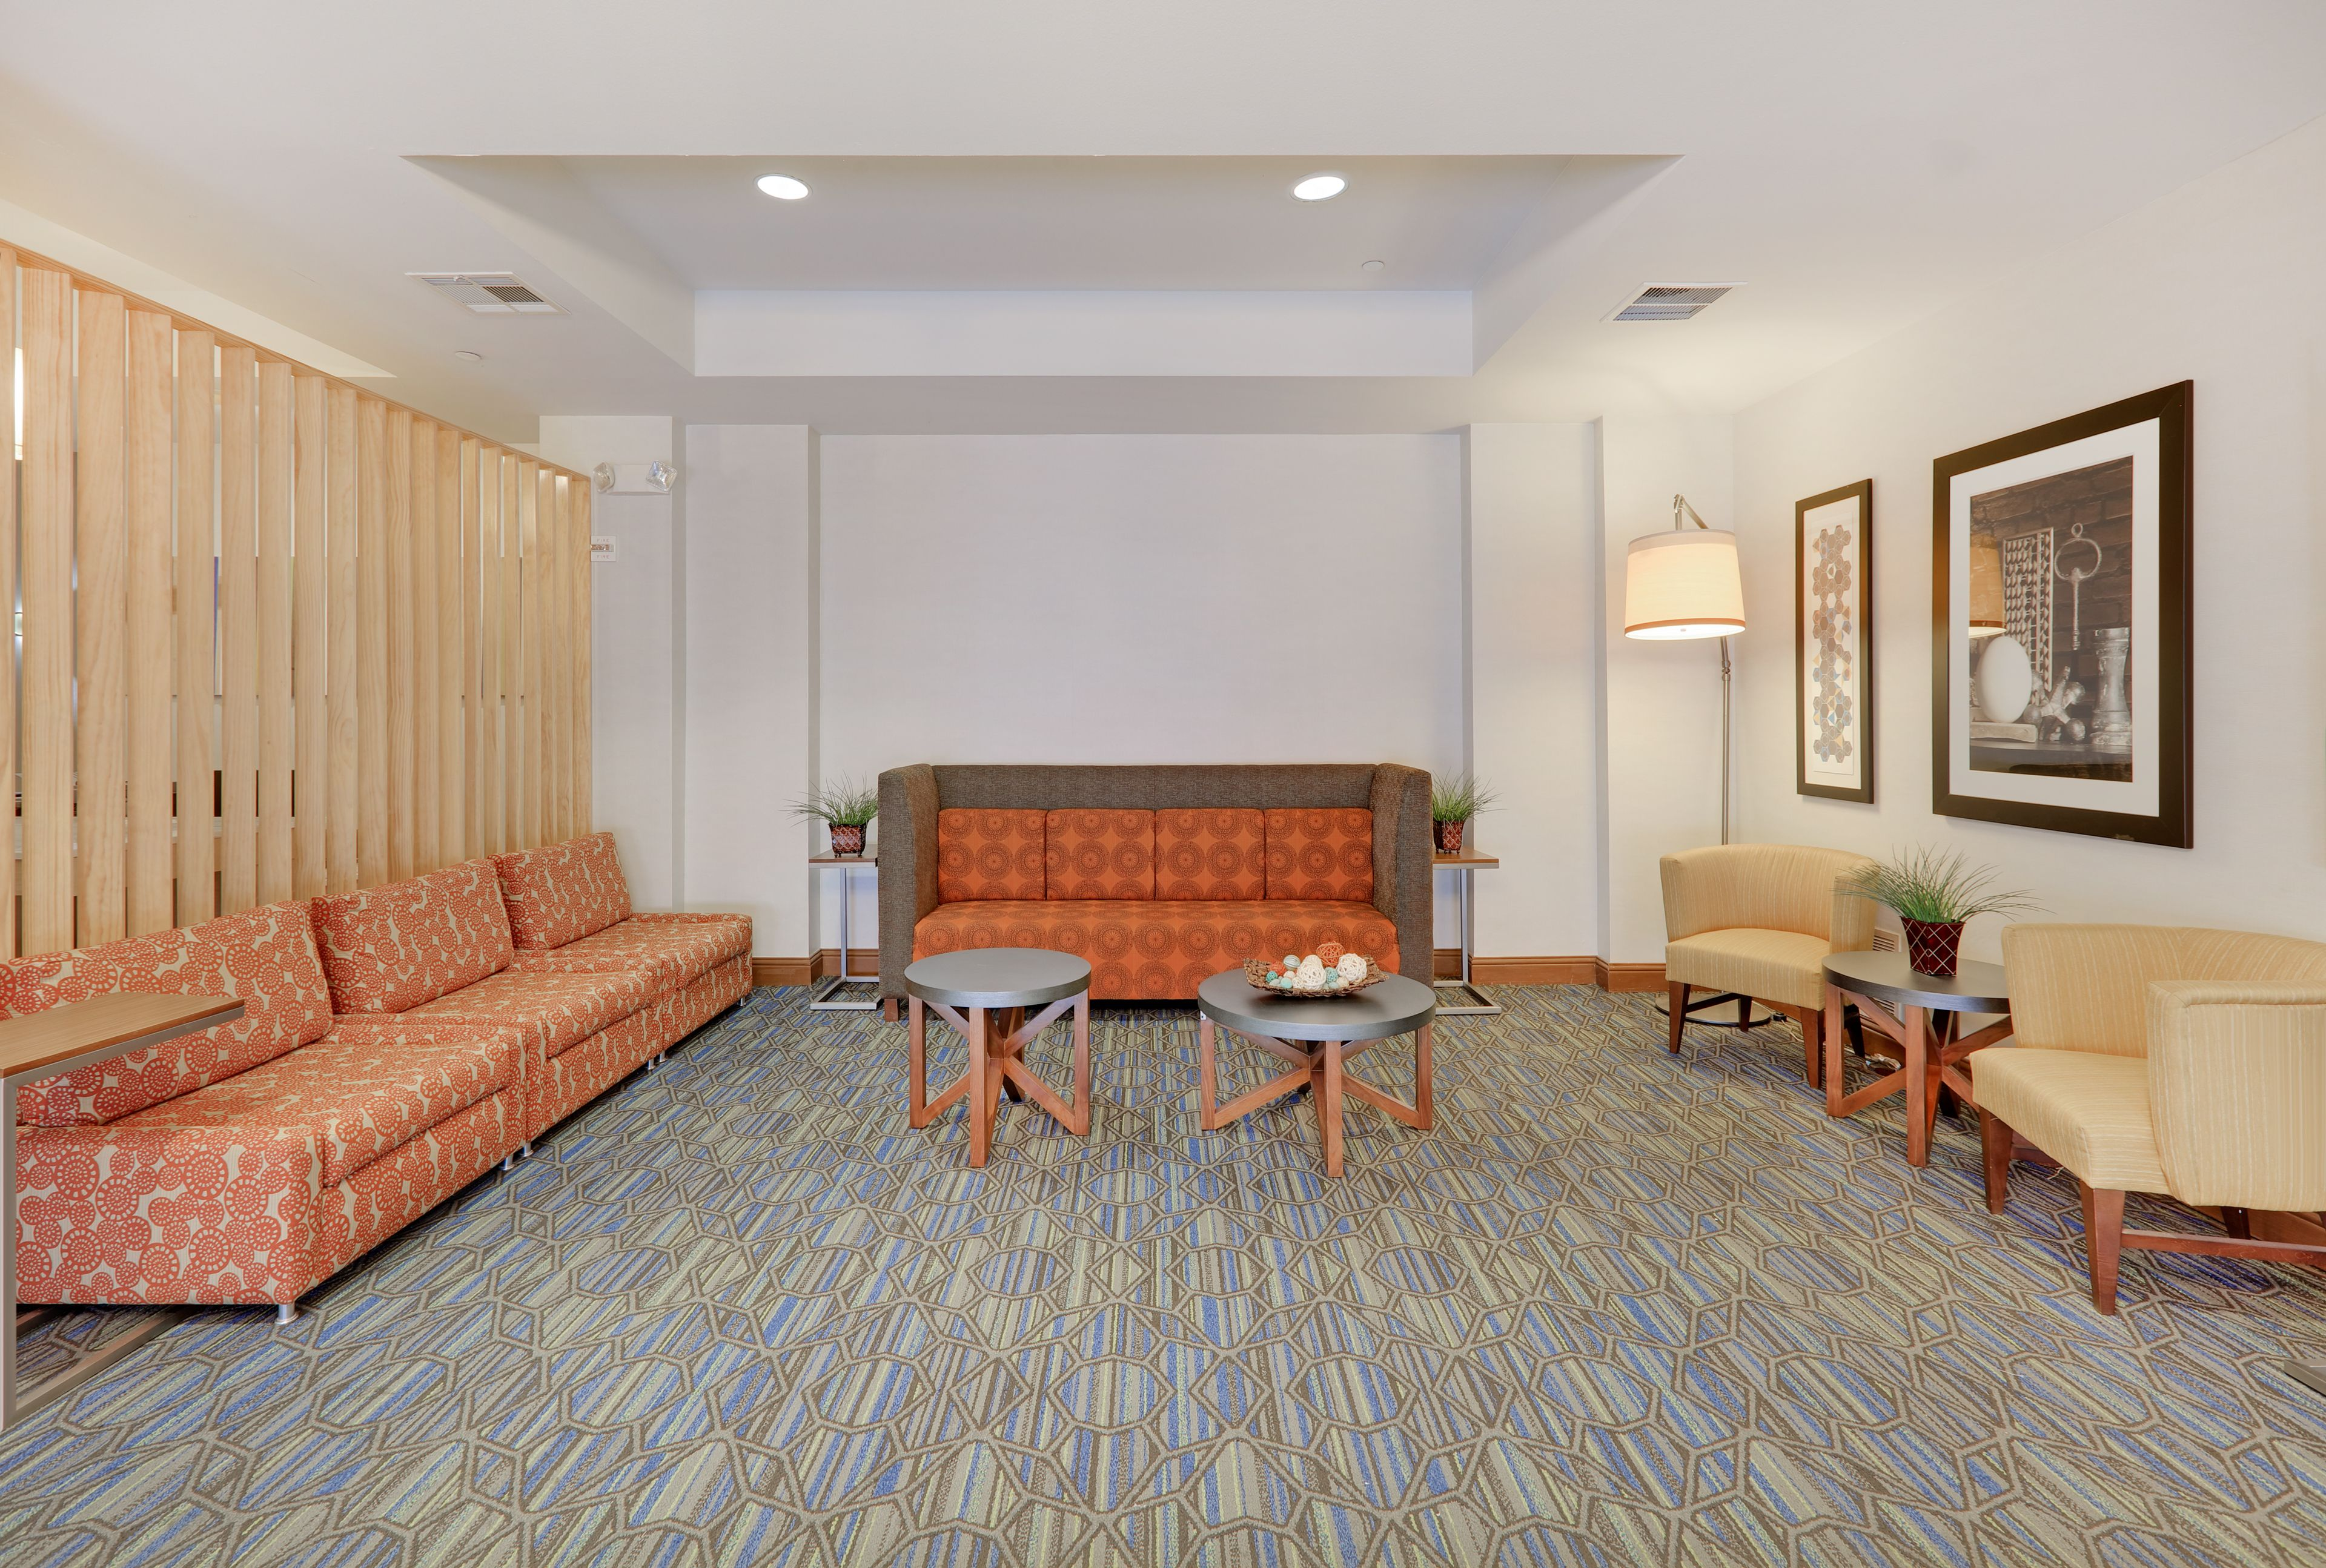 Holiday Inn Express & Suites Burleson/Ft. Worth image 2